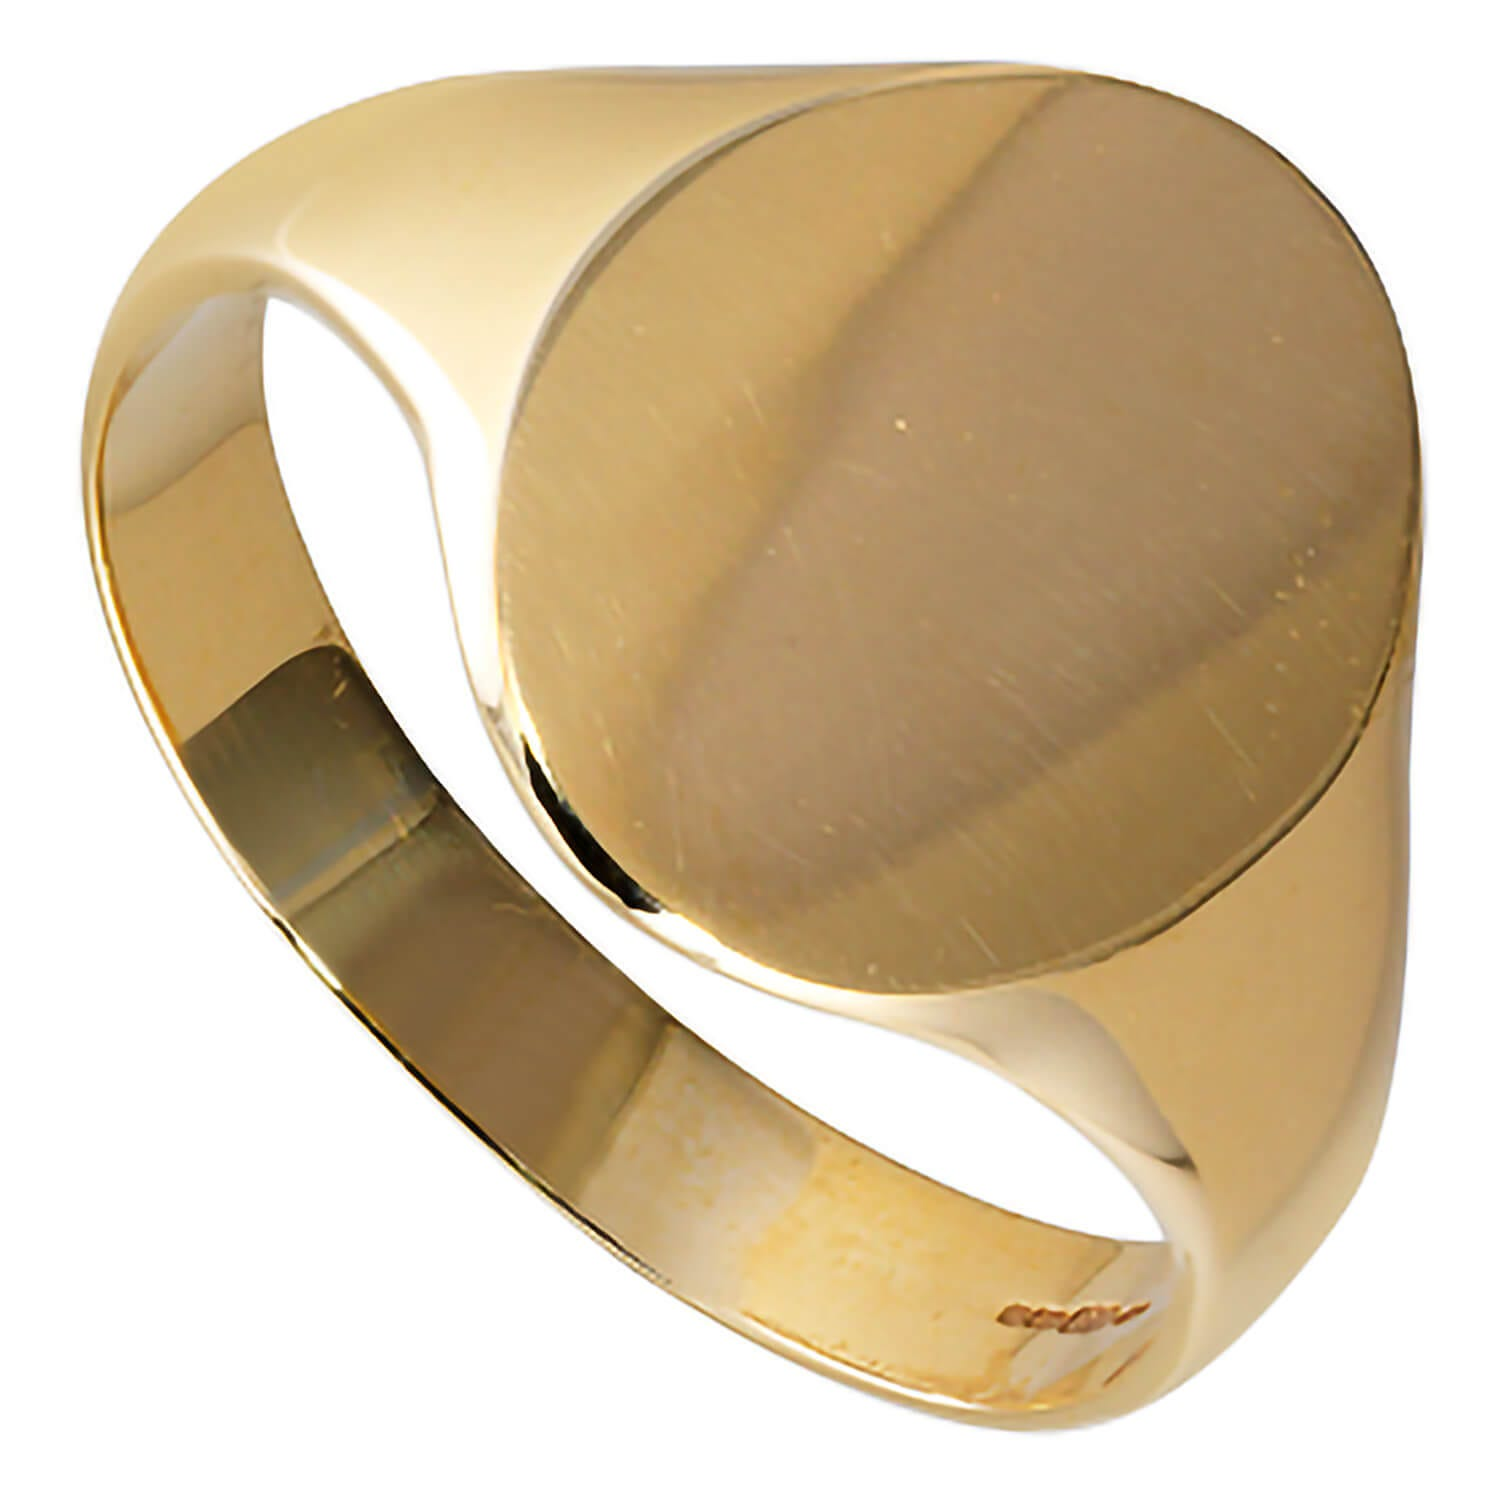 Men's 9ct gold oval signet ring